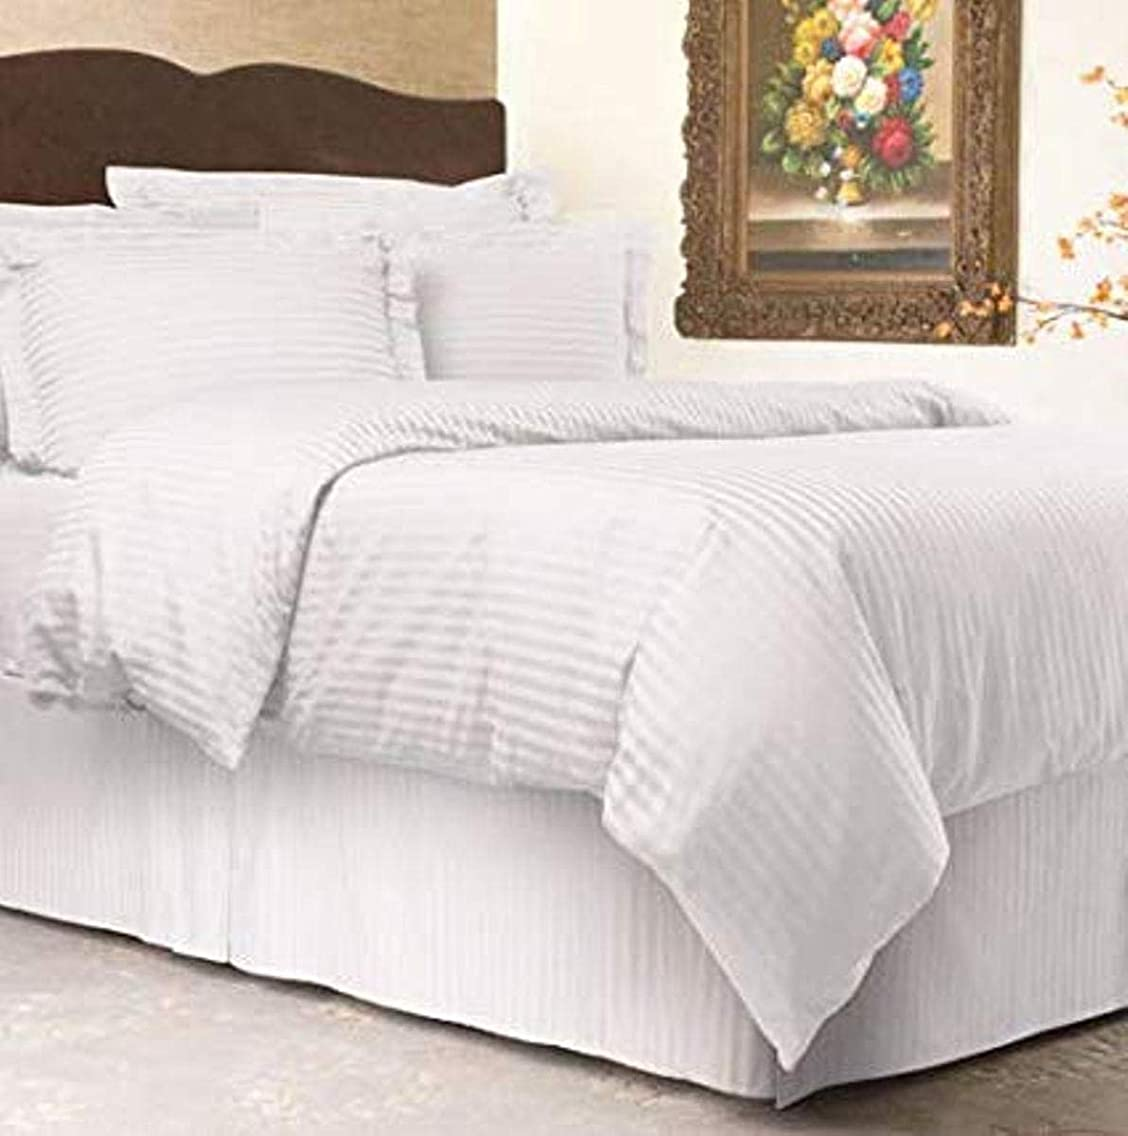 LINENWALAS Soft & Cozy Sateen Weave Stripe Patterned Duvet Cover with Zipper 3-Piece Set 100% Long Staple Cotton 300 Thread Count - White - King/Cal King